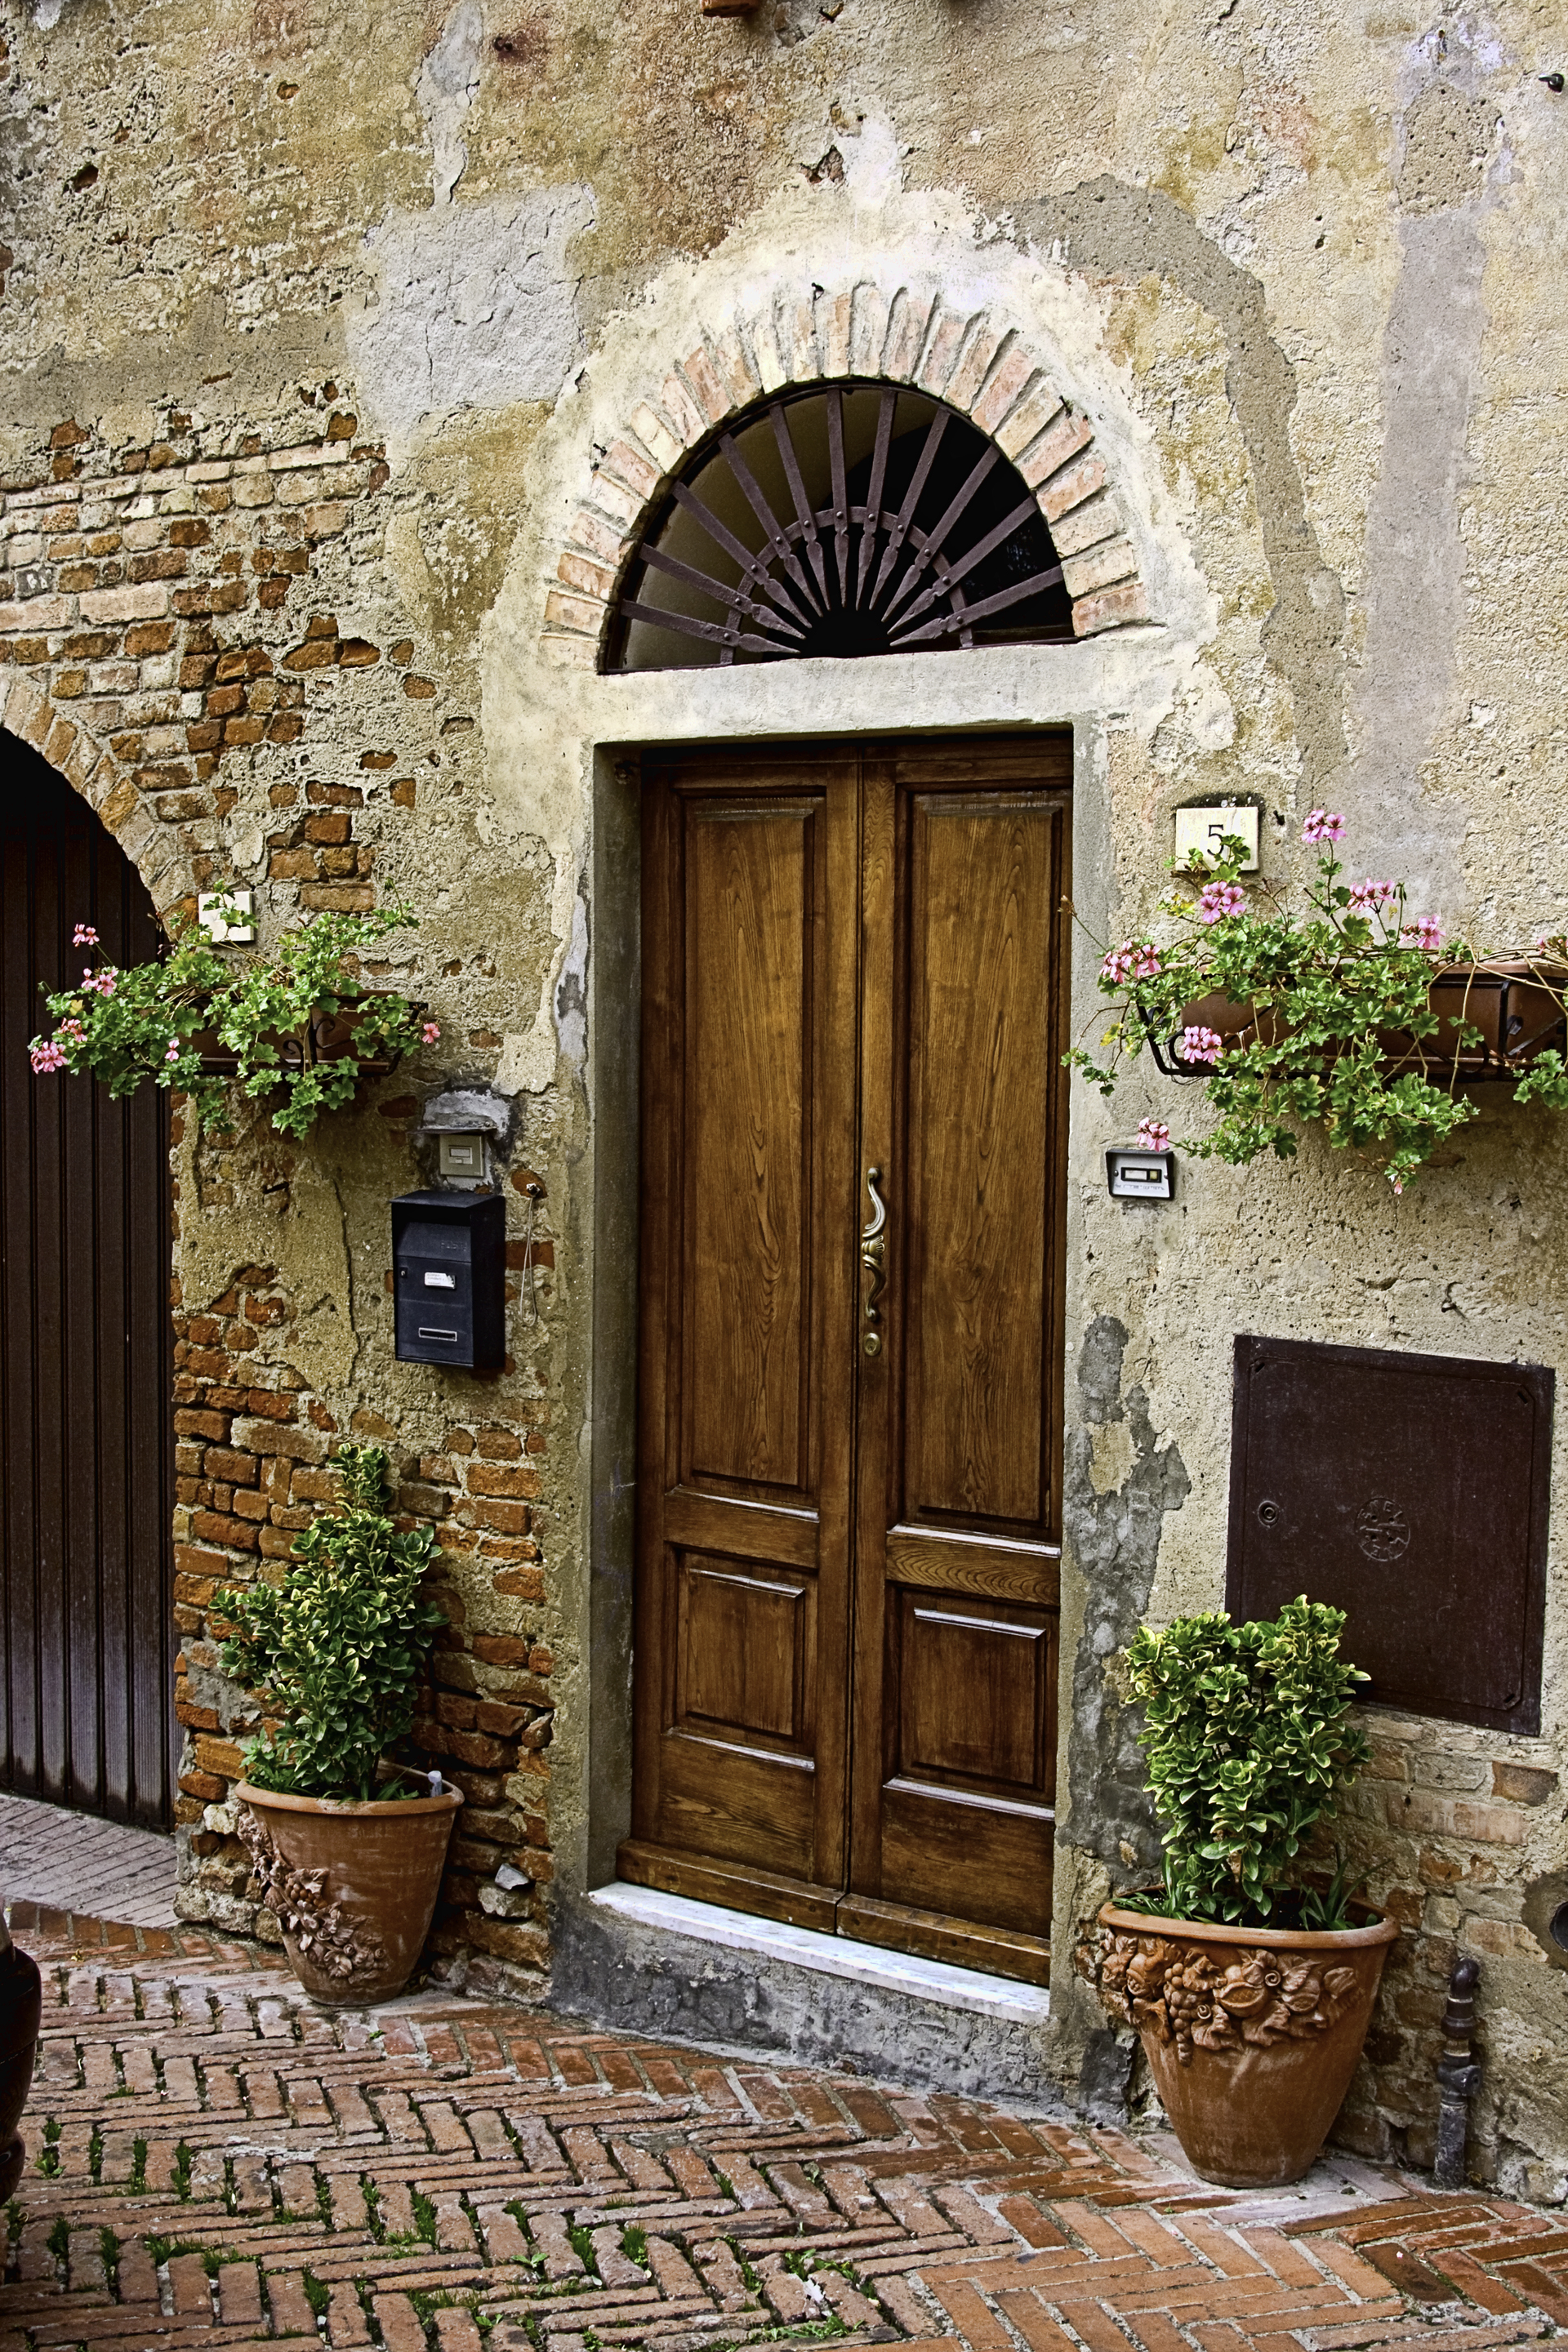 Doorway in Tuscany 8 x 12.jpg